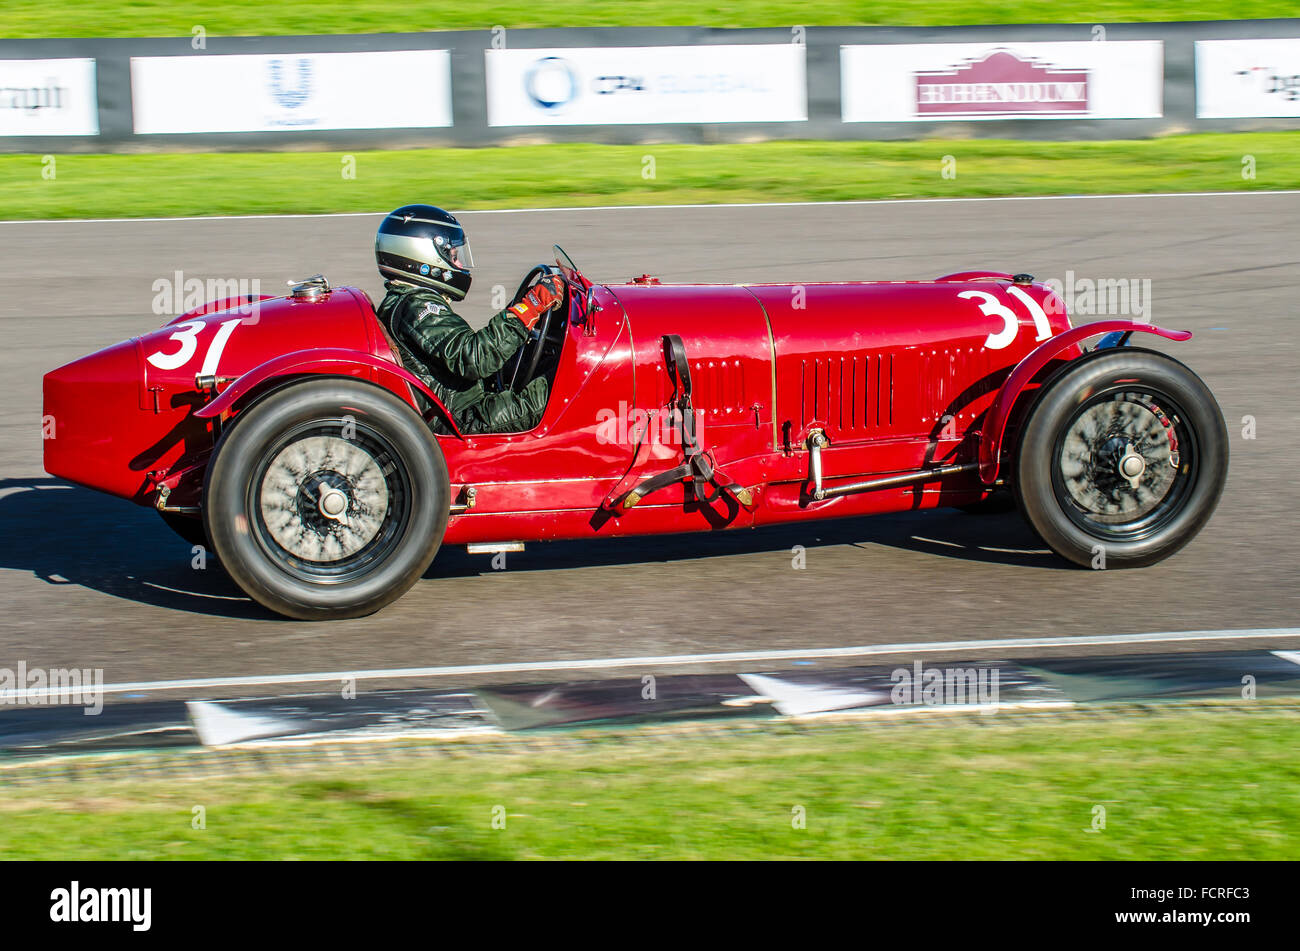 1931-maserati-tipo-26m-owned-by-julian-majzub-and-driven-by-duncan-FCRFC3.jpg